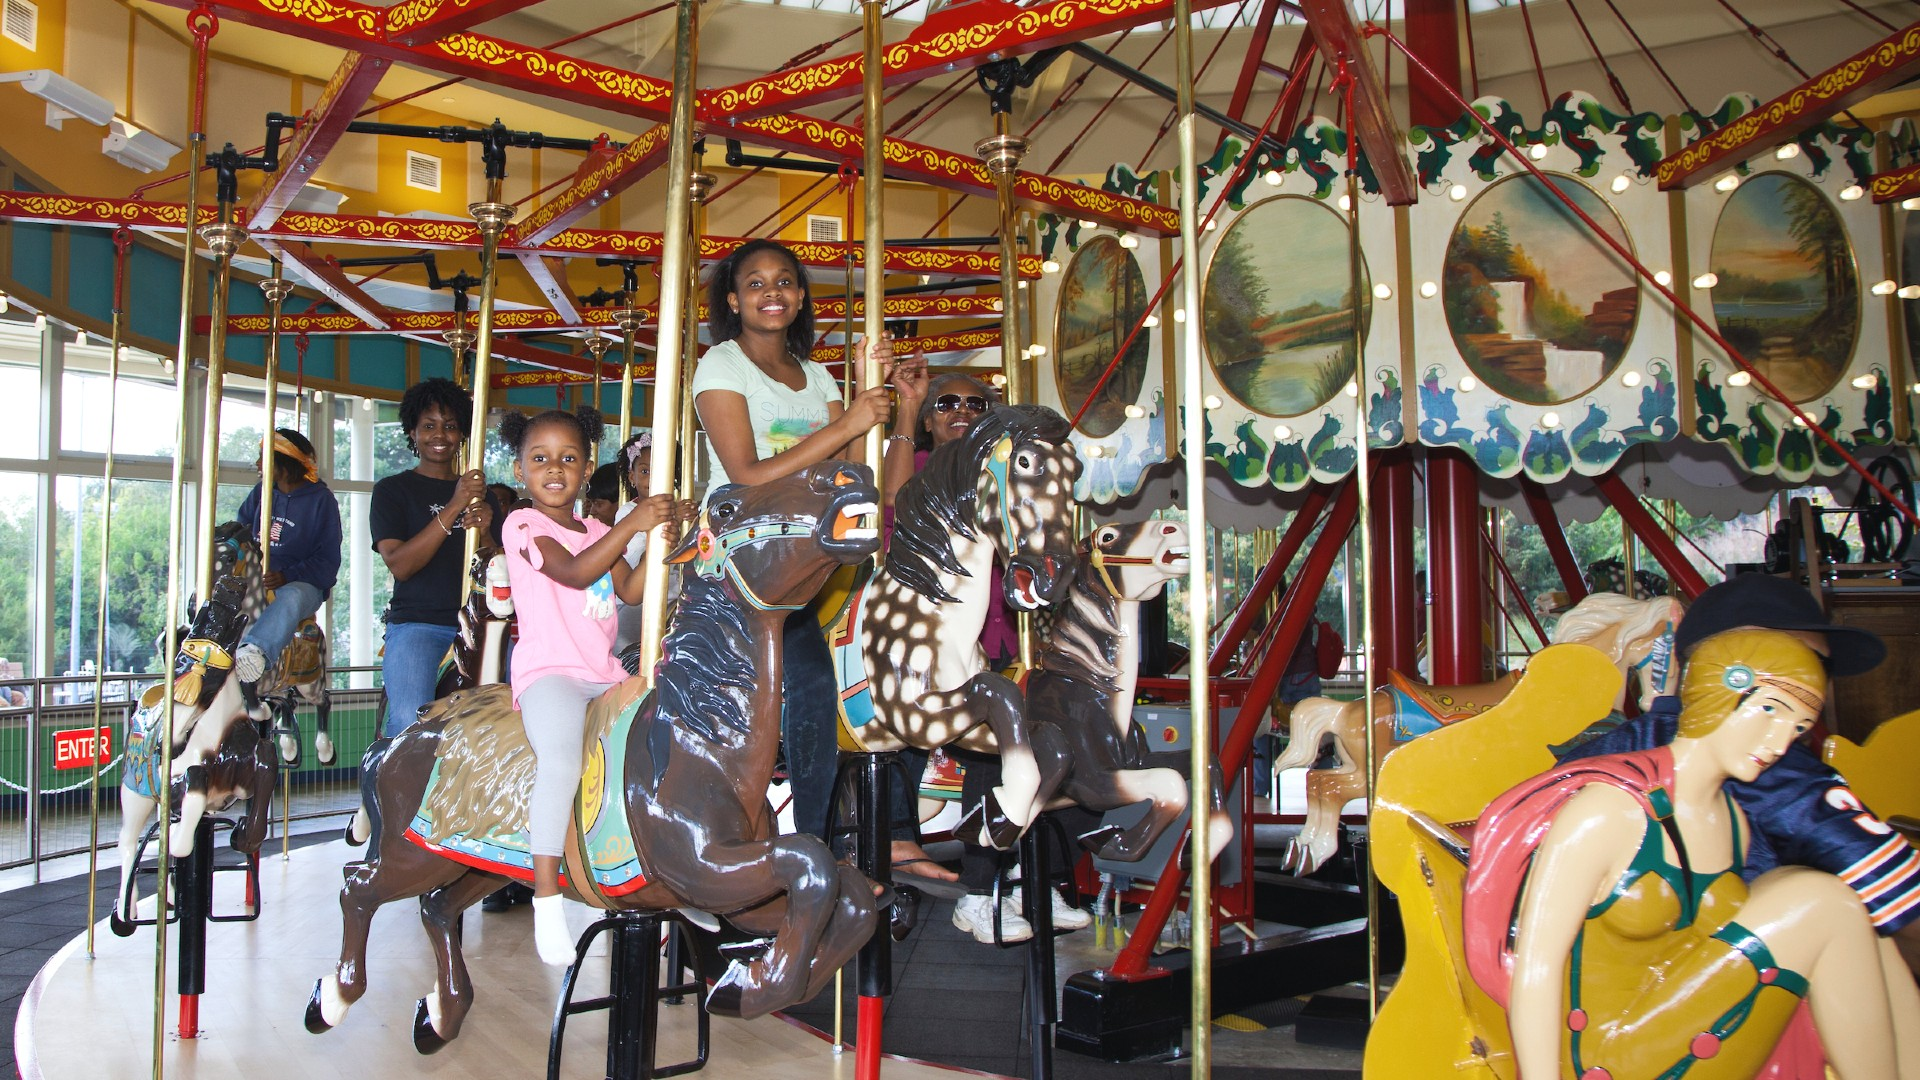 Family with two girls smiling on the carousel horses at chavis park